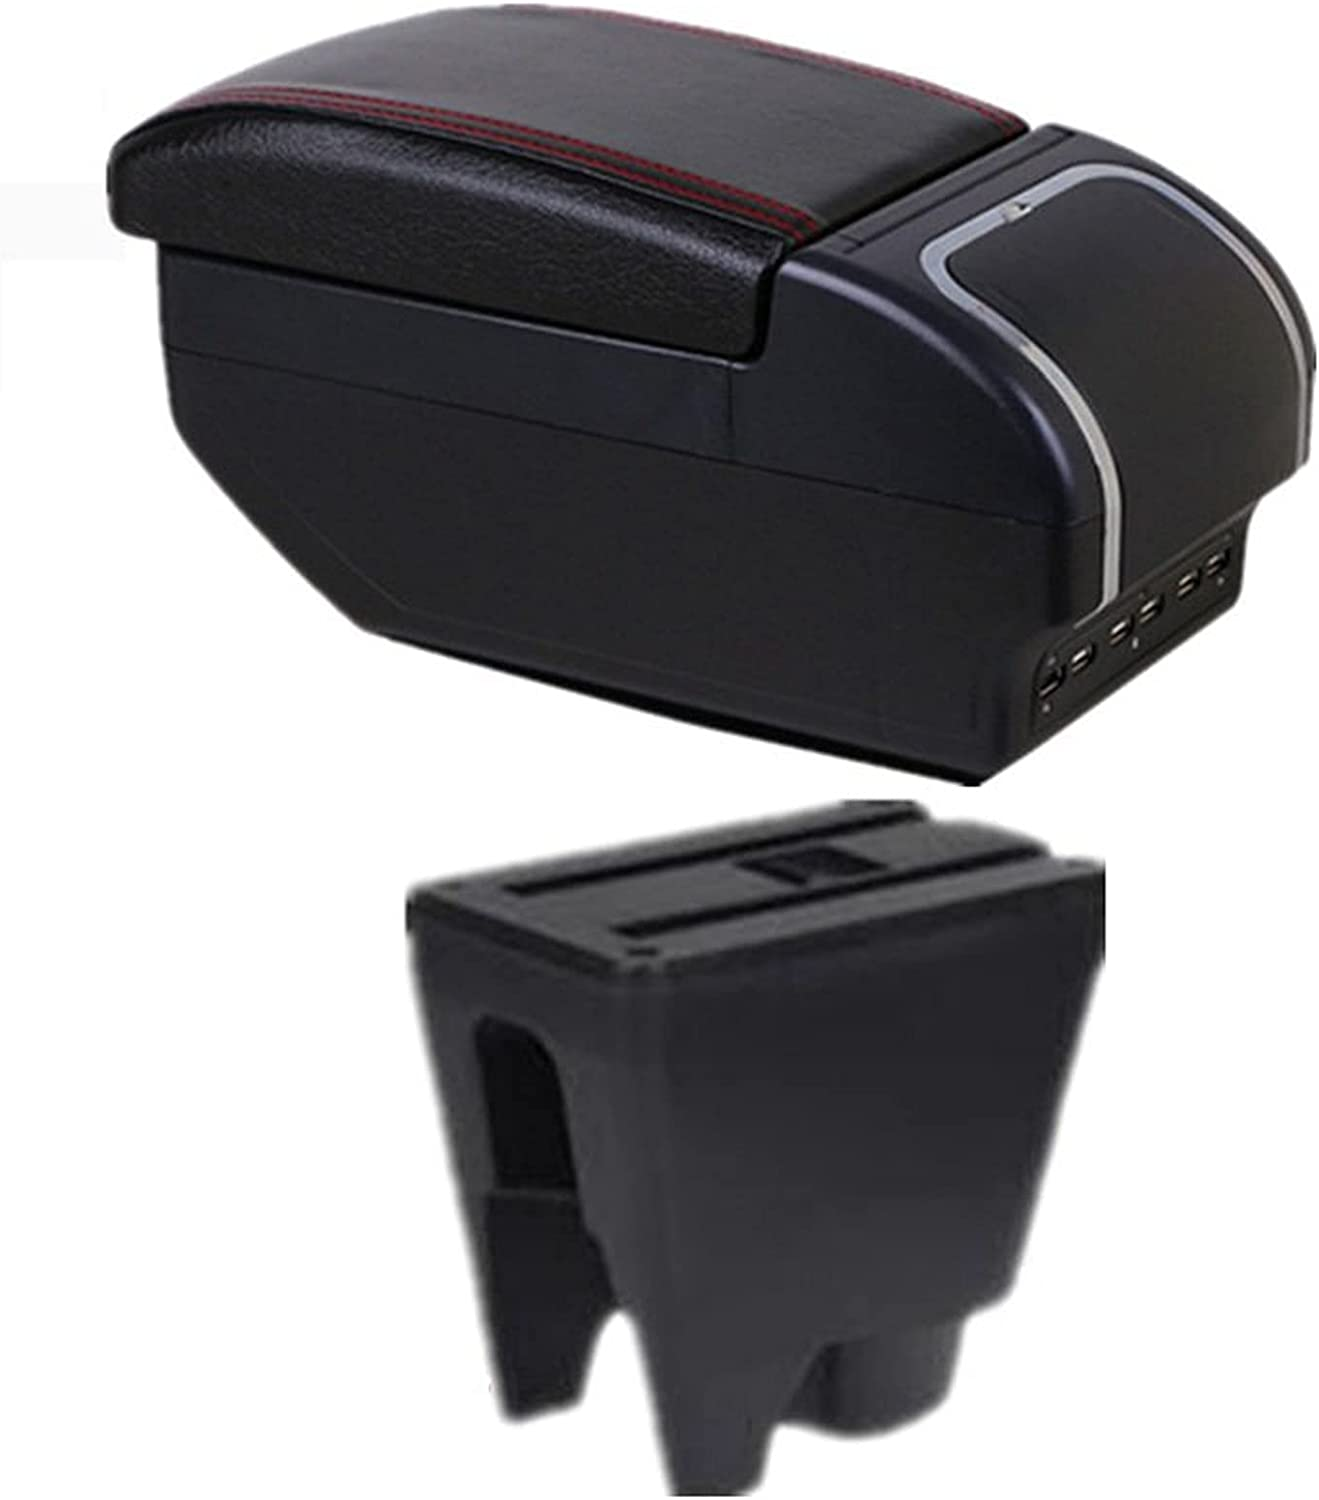 for T-oyota Latest item Aygo Bj Armrest quality assurance Box Heighten Central Conte Store